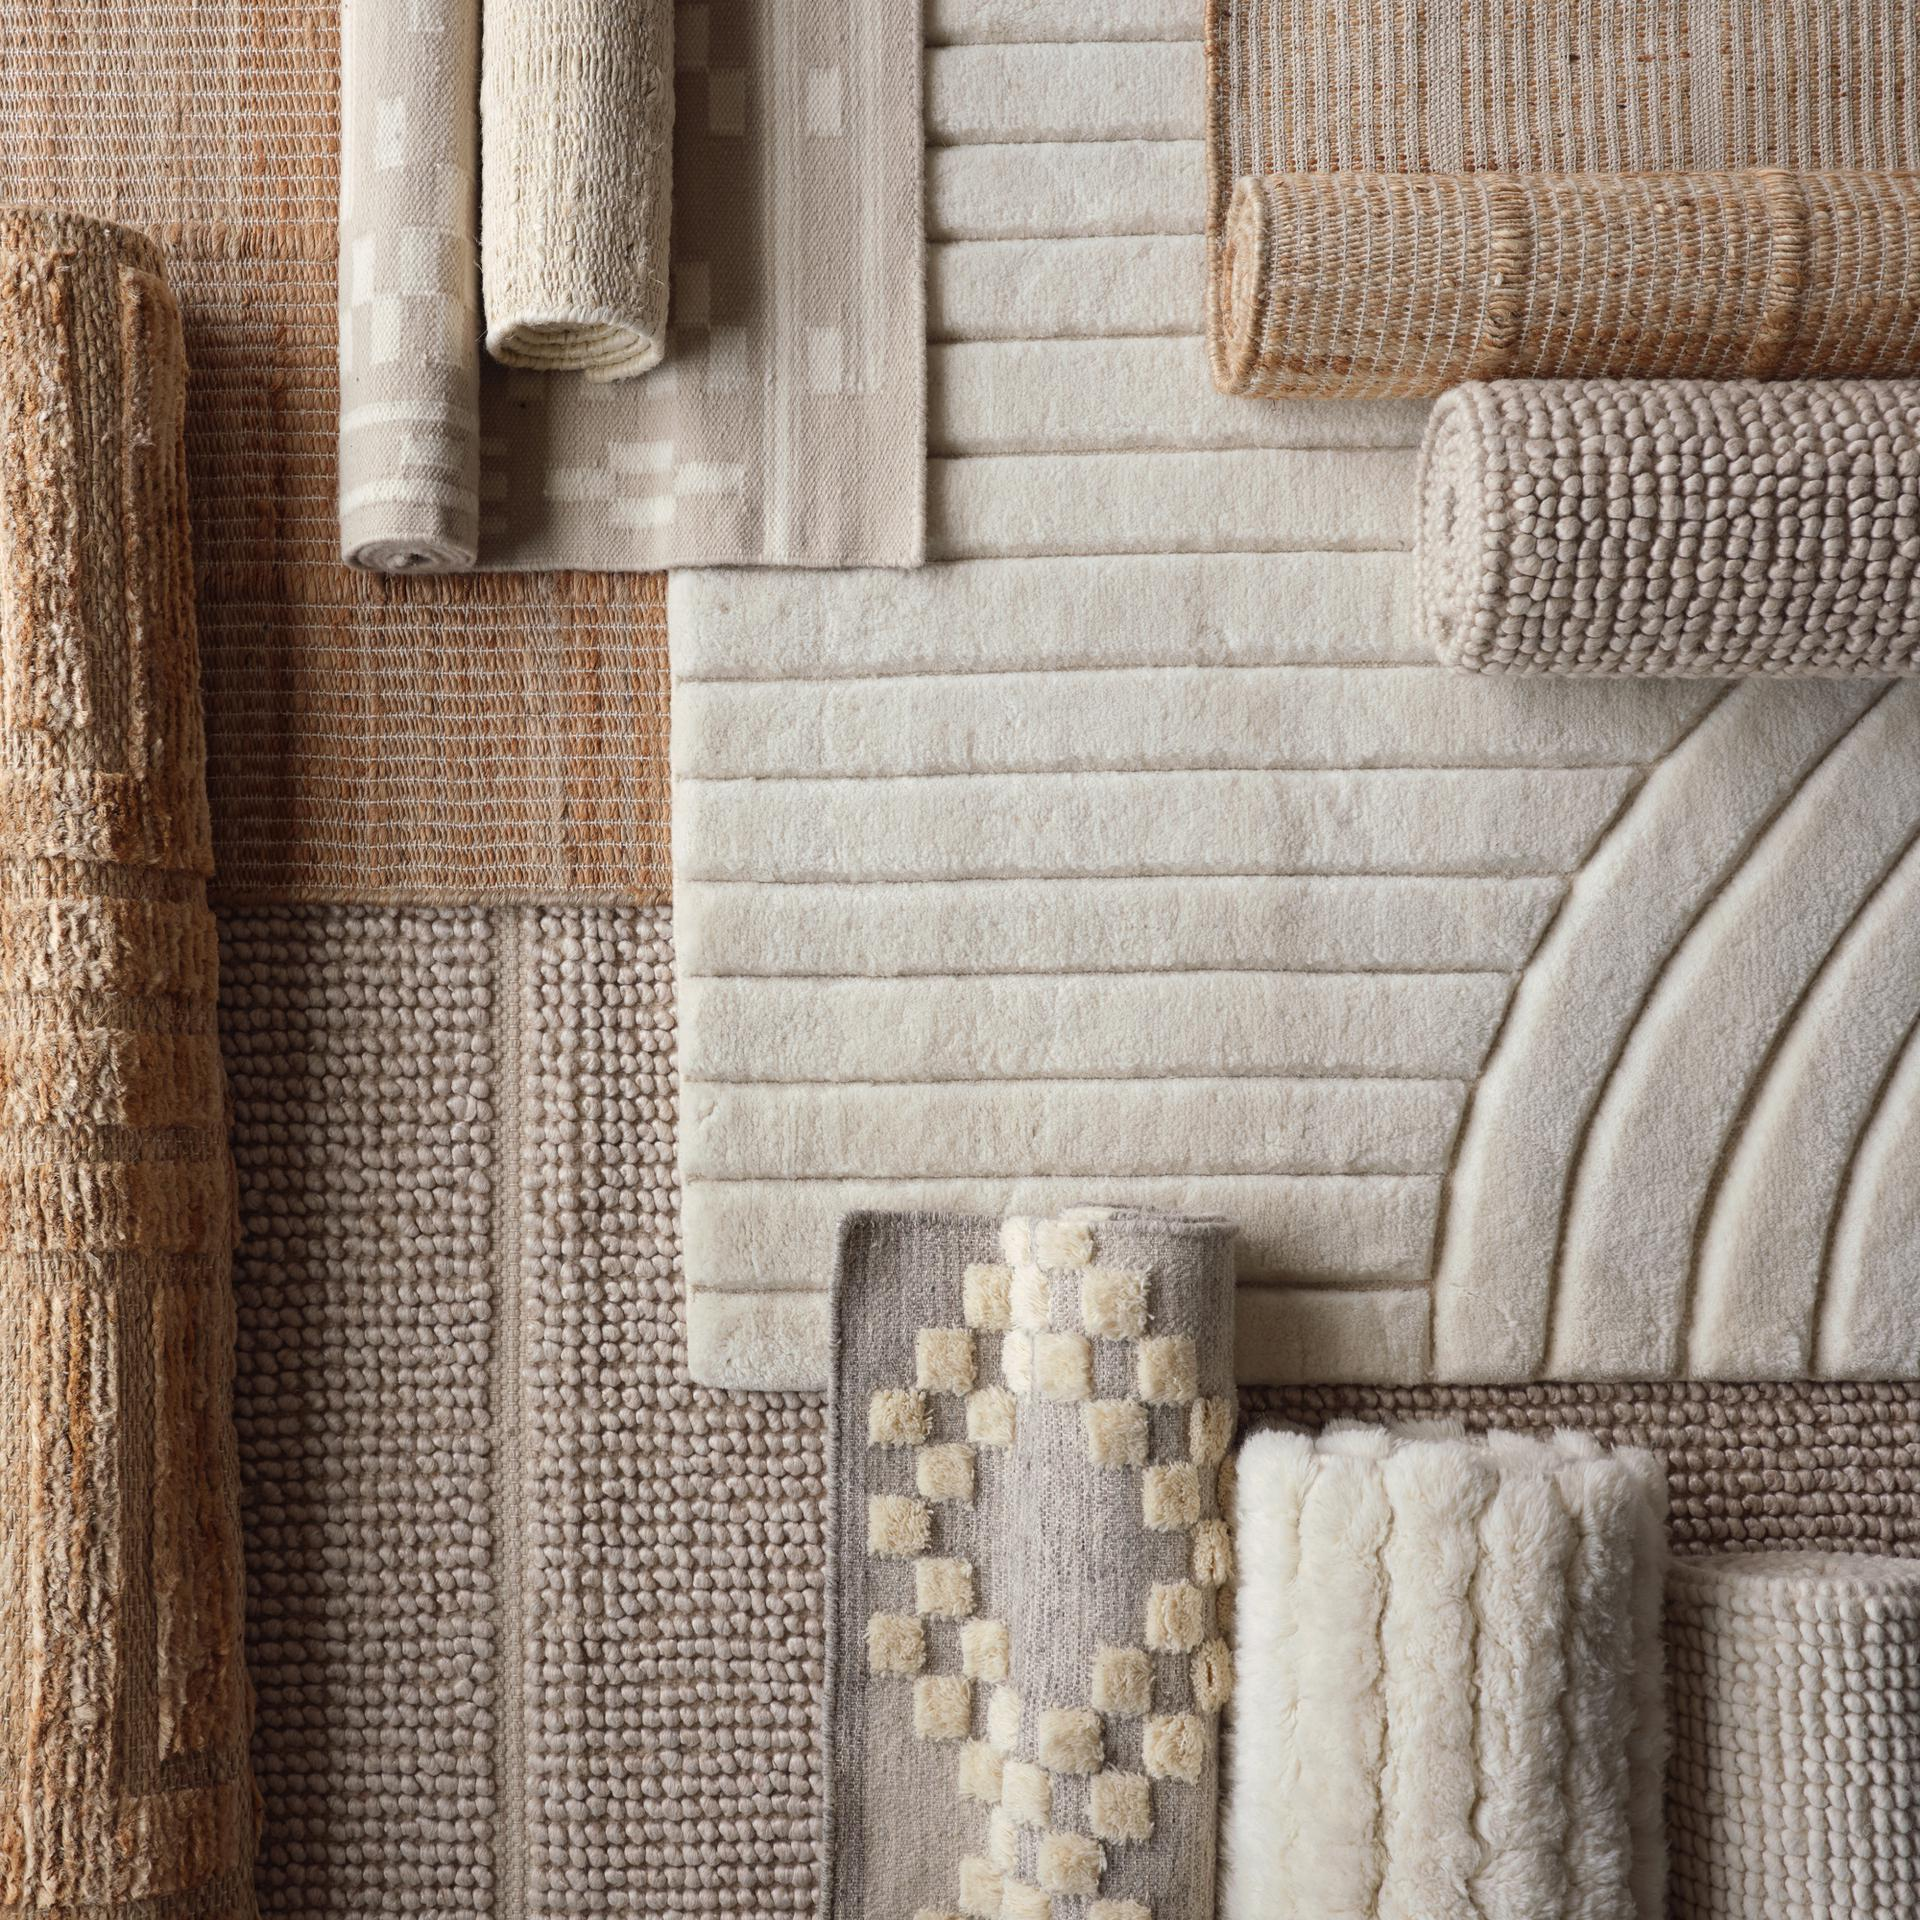 Rugs That Make a Statement